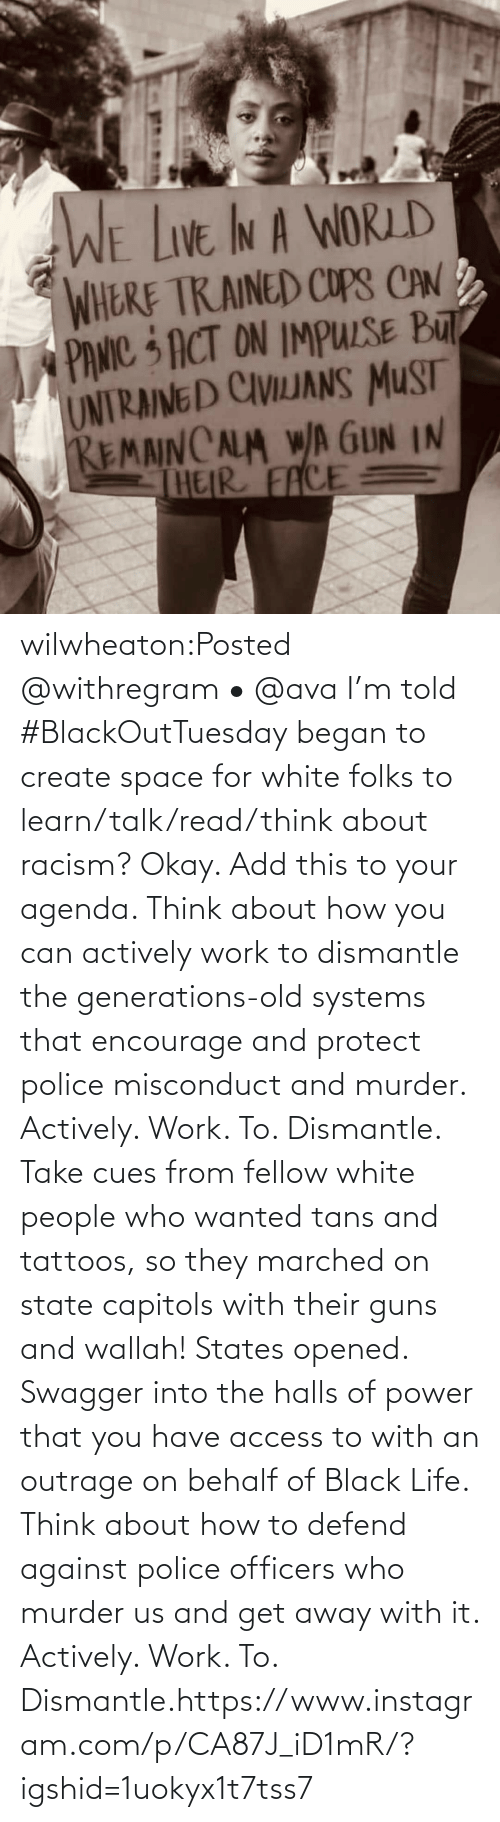 Im: wilwheaton:Posted @withregram • @ava I'm told #BlackOutTuesday began to create space for white folks to learn/talk/read/think about racism? Okay. Add this to your agenda. Think about how you can actively work to dismantle the generations-old systems that encourage and protect police misconduct and murder. Actively. Work. To. Dismantle. Take cues from fellow white people who wanted tans and tattoos, so they marched on state capitols with their guns and wallah! States opened. Swagger into the halls of power that you have access to with an outrage on behalf of Black Life. Think about how to defend against police officers who murder us and get away with it. Actively. Work. To. Dismantle.https://www.instagram.com/p/CA87J_iD1mR/?igshid=1uokyx1t7tss7